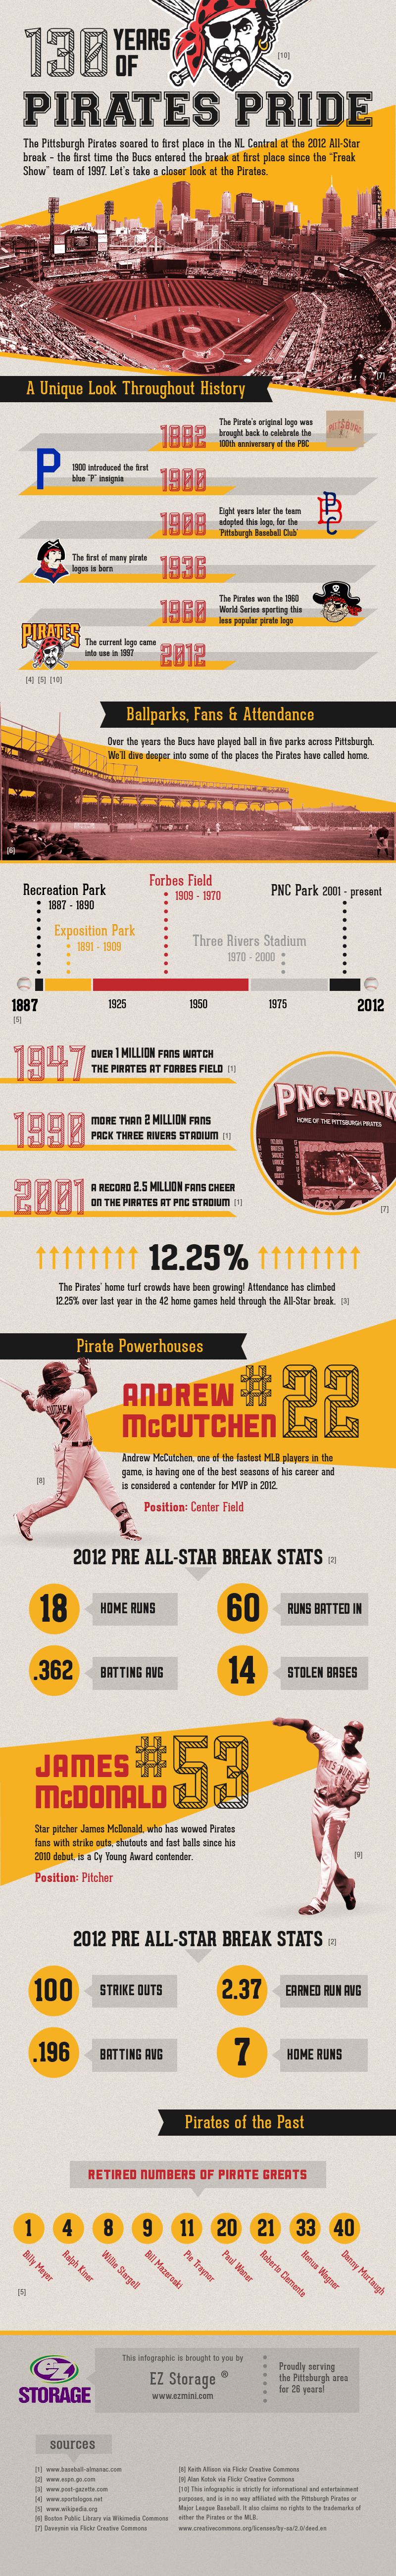 130 Years of Pirates Pride